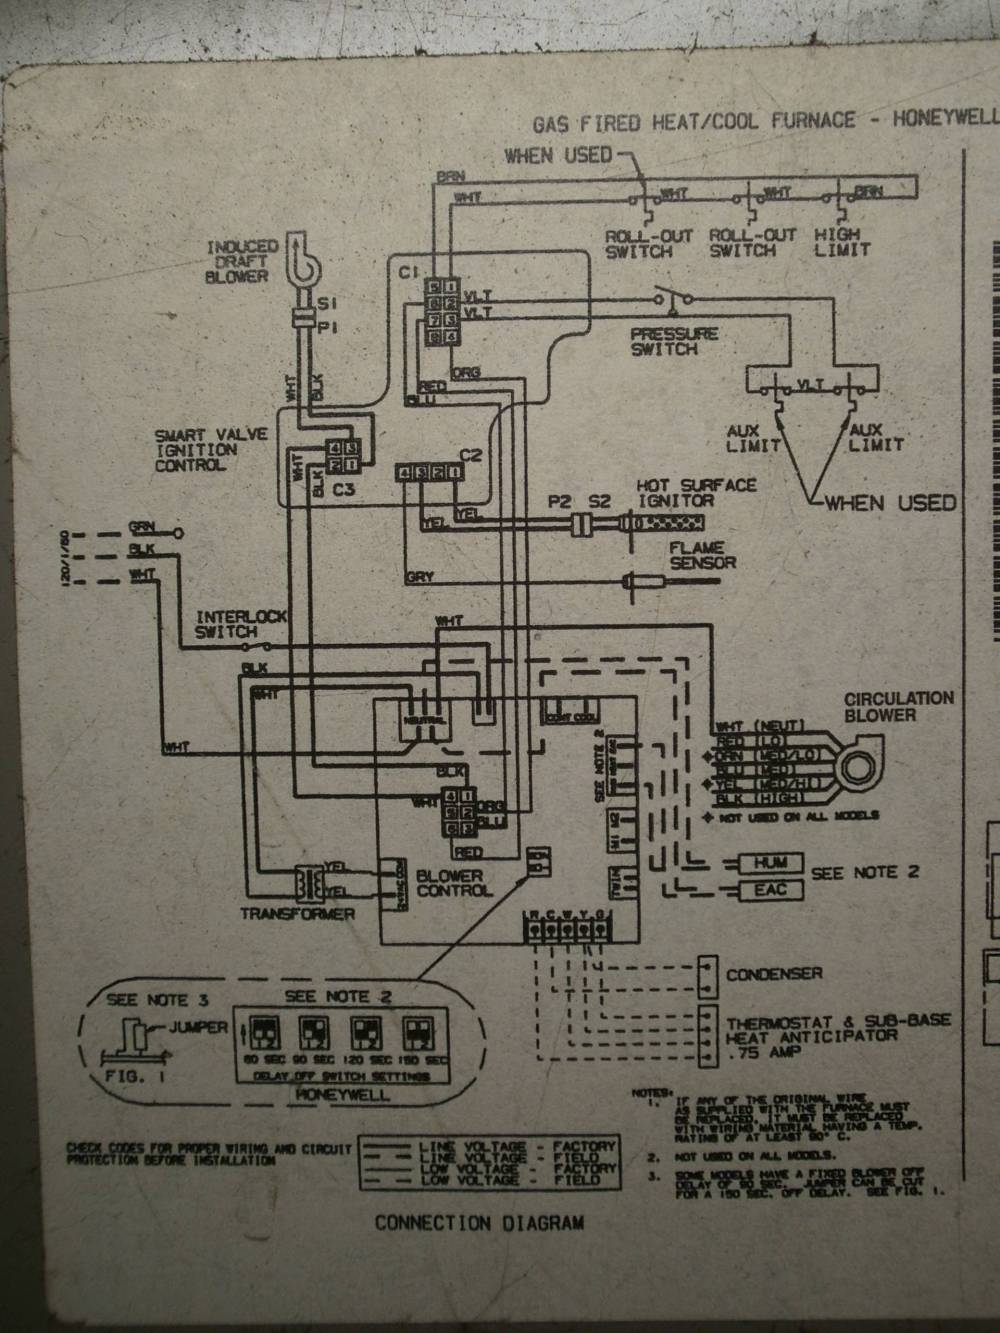 medium resolution of goodman hvac fan wiring diagram hvac troubleshoot ac issue no inside blower home improvementpart 1